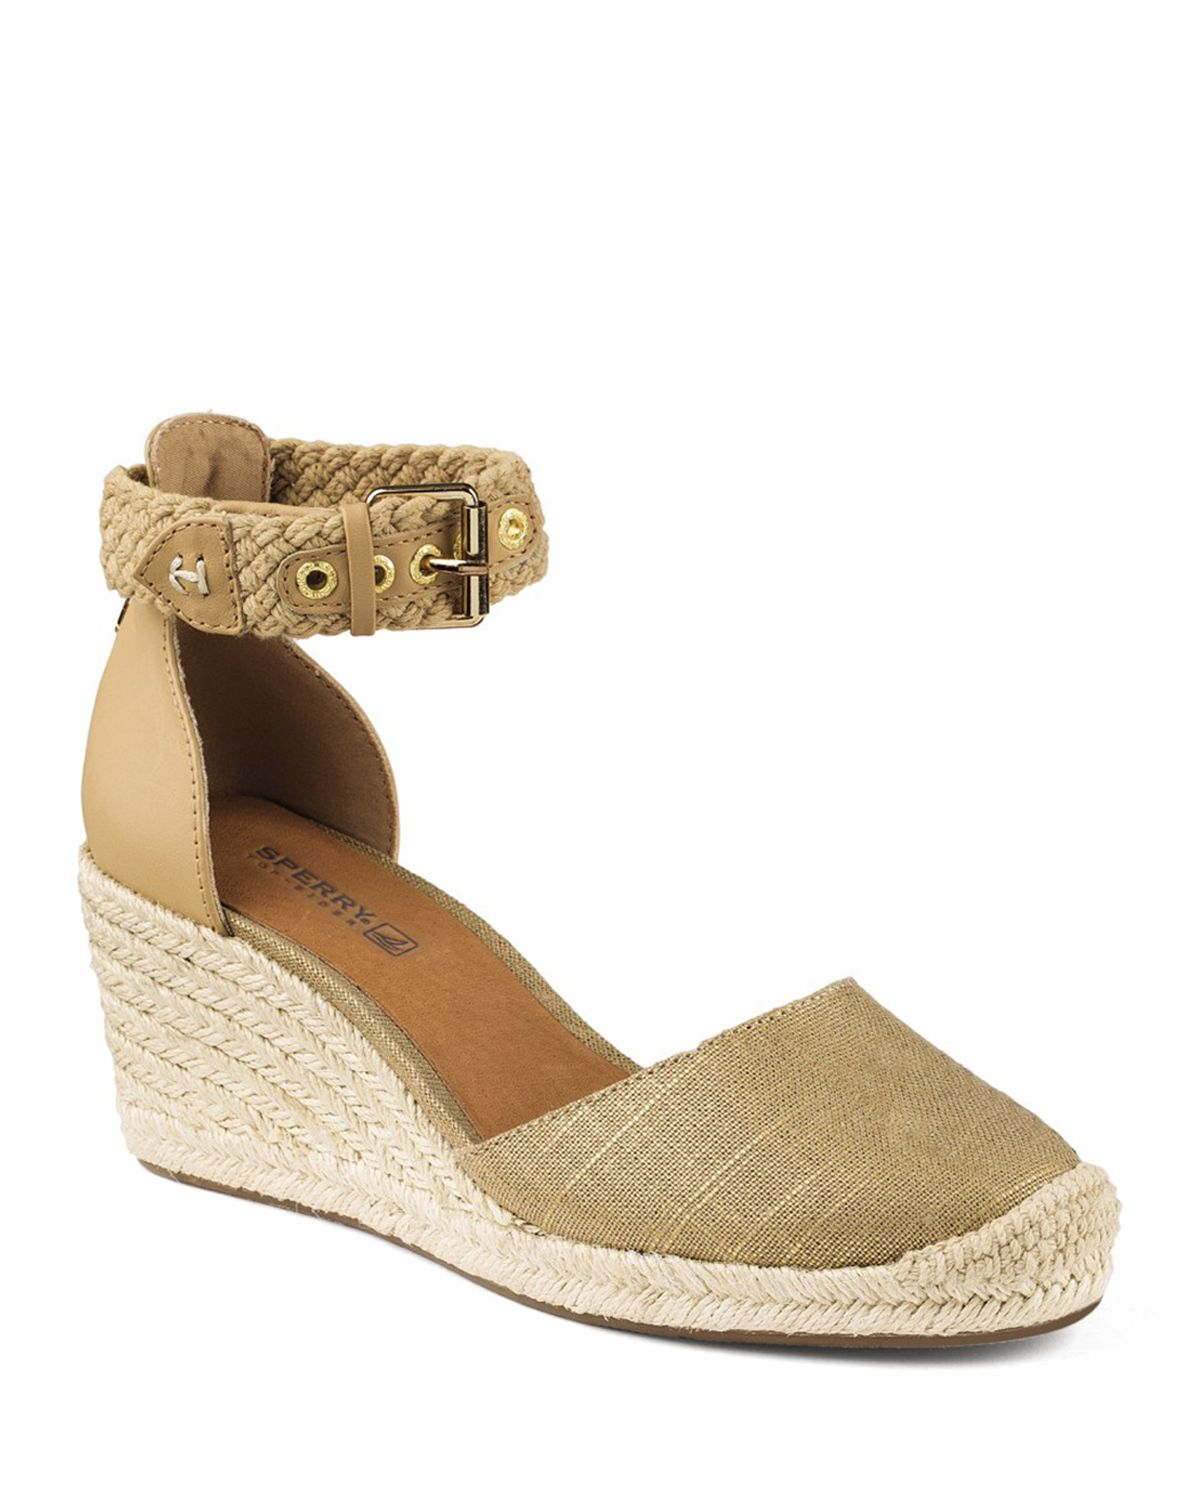 2486192d74c Lyst - Sperry Top-Sider Espadrille Wedge Sandals - Valencia Closed ...